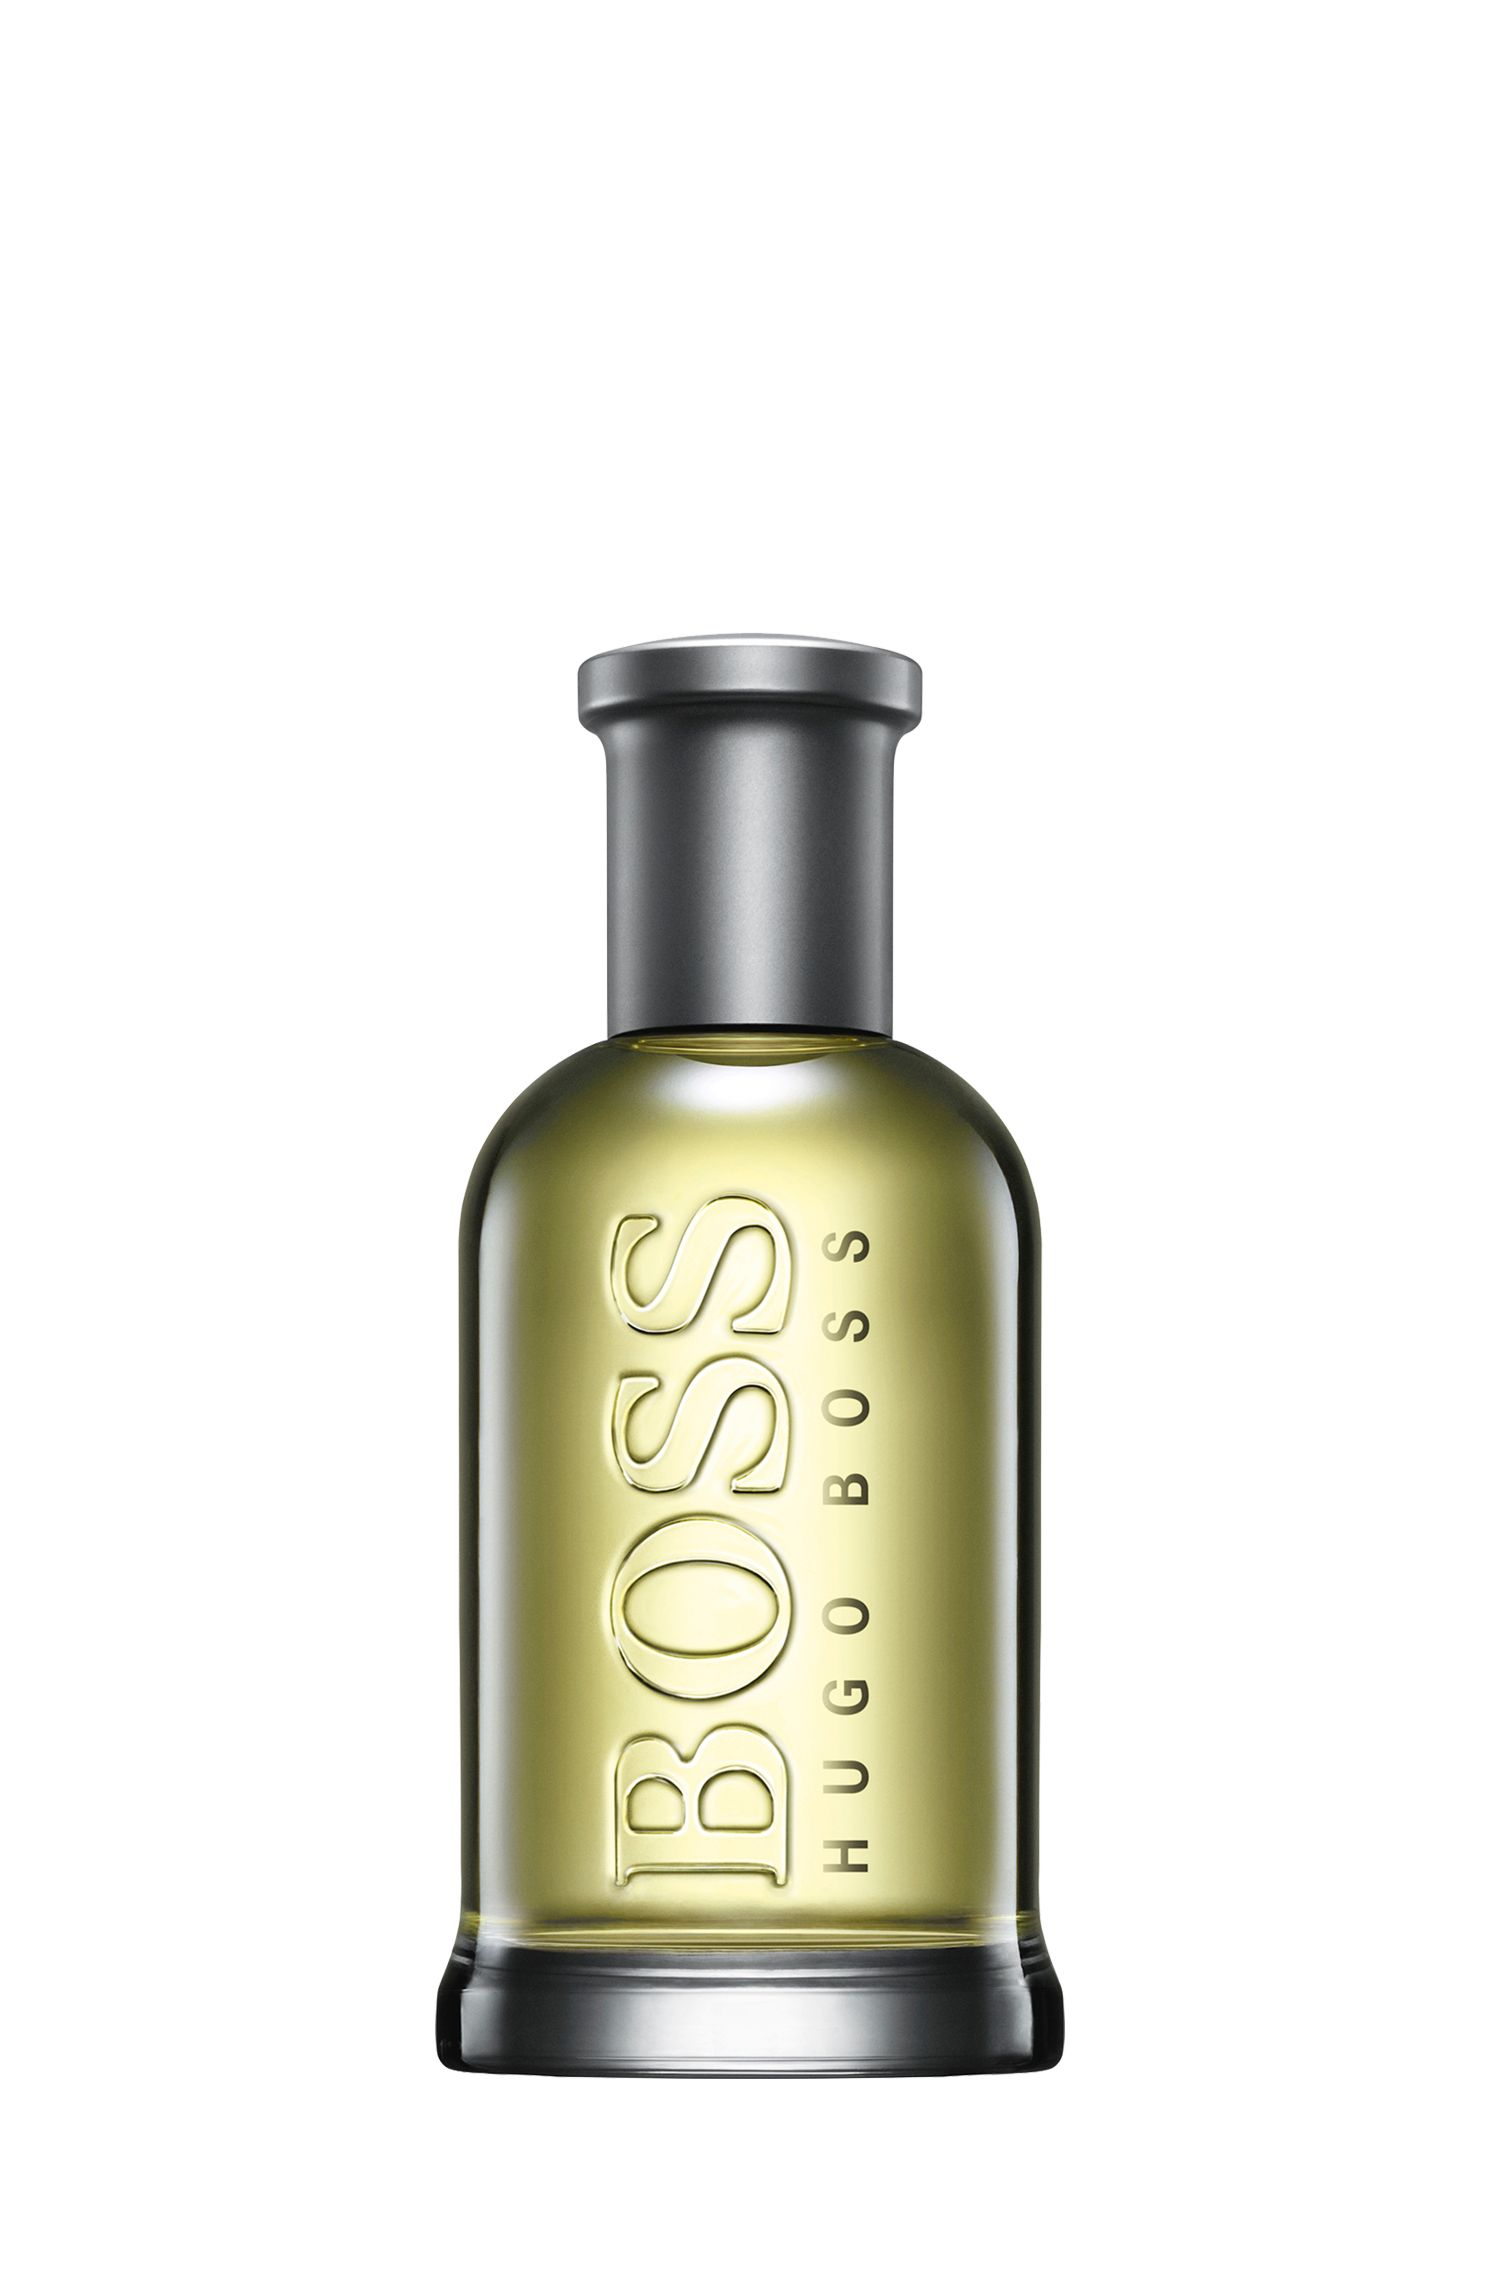 BOSS Bottled eau de toilette 50ml, Assorted-Pre-Pack